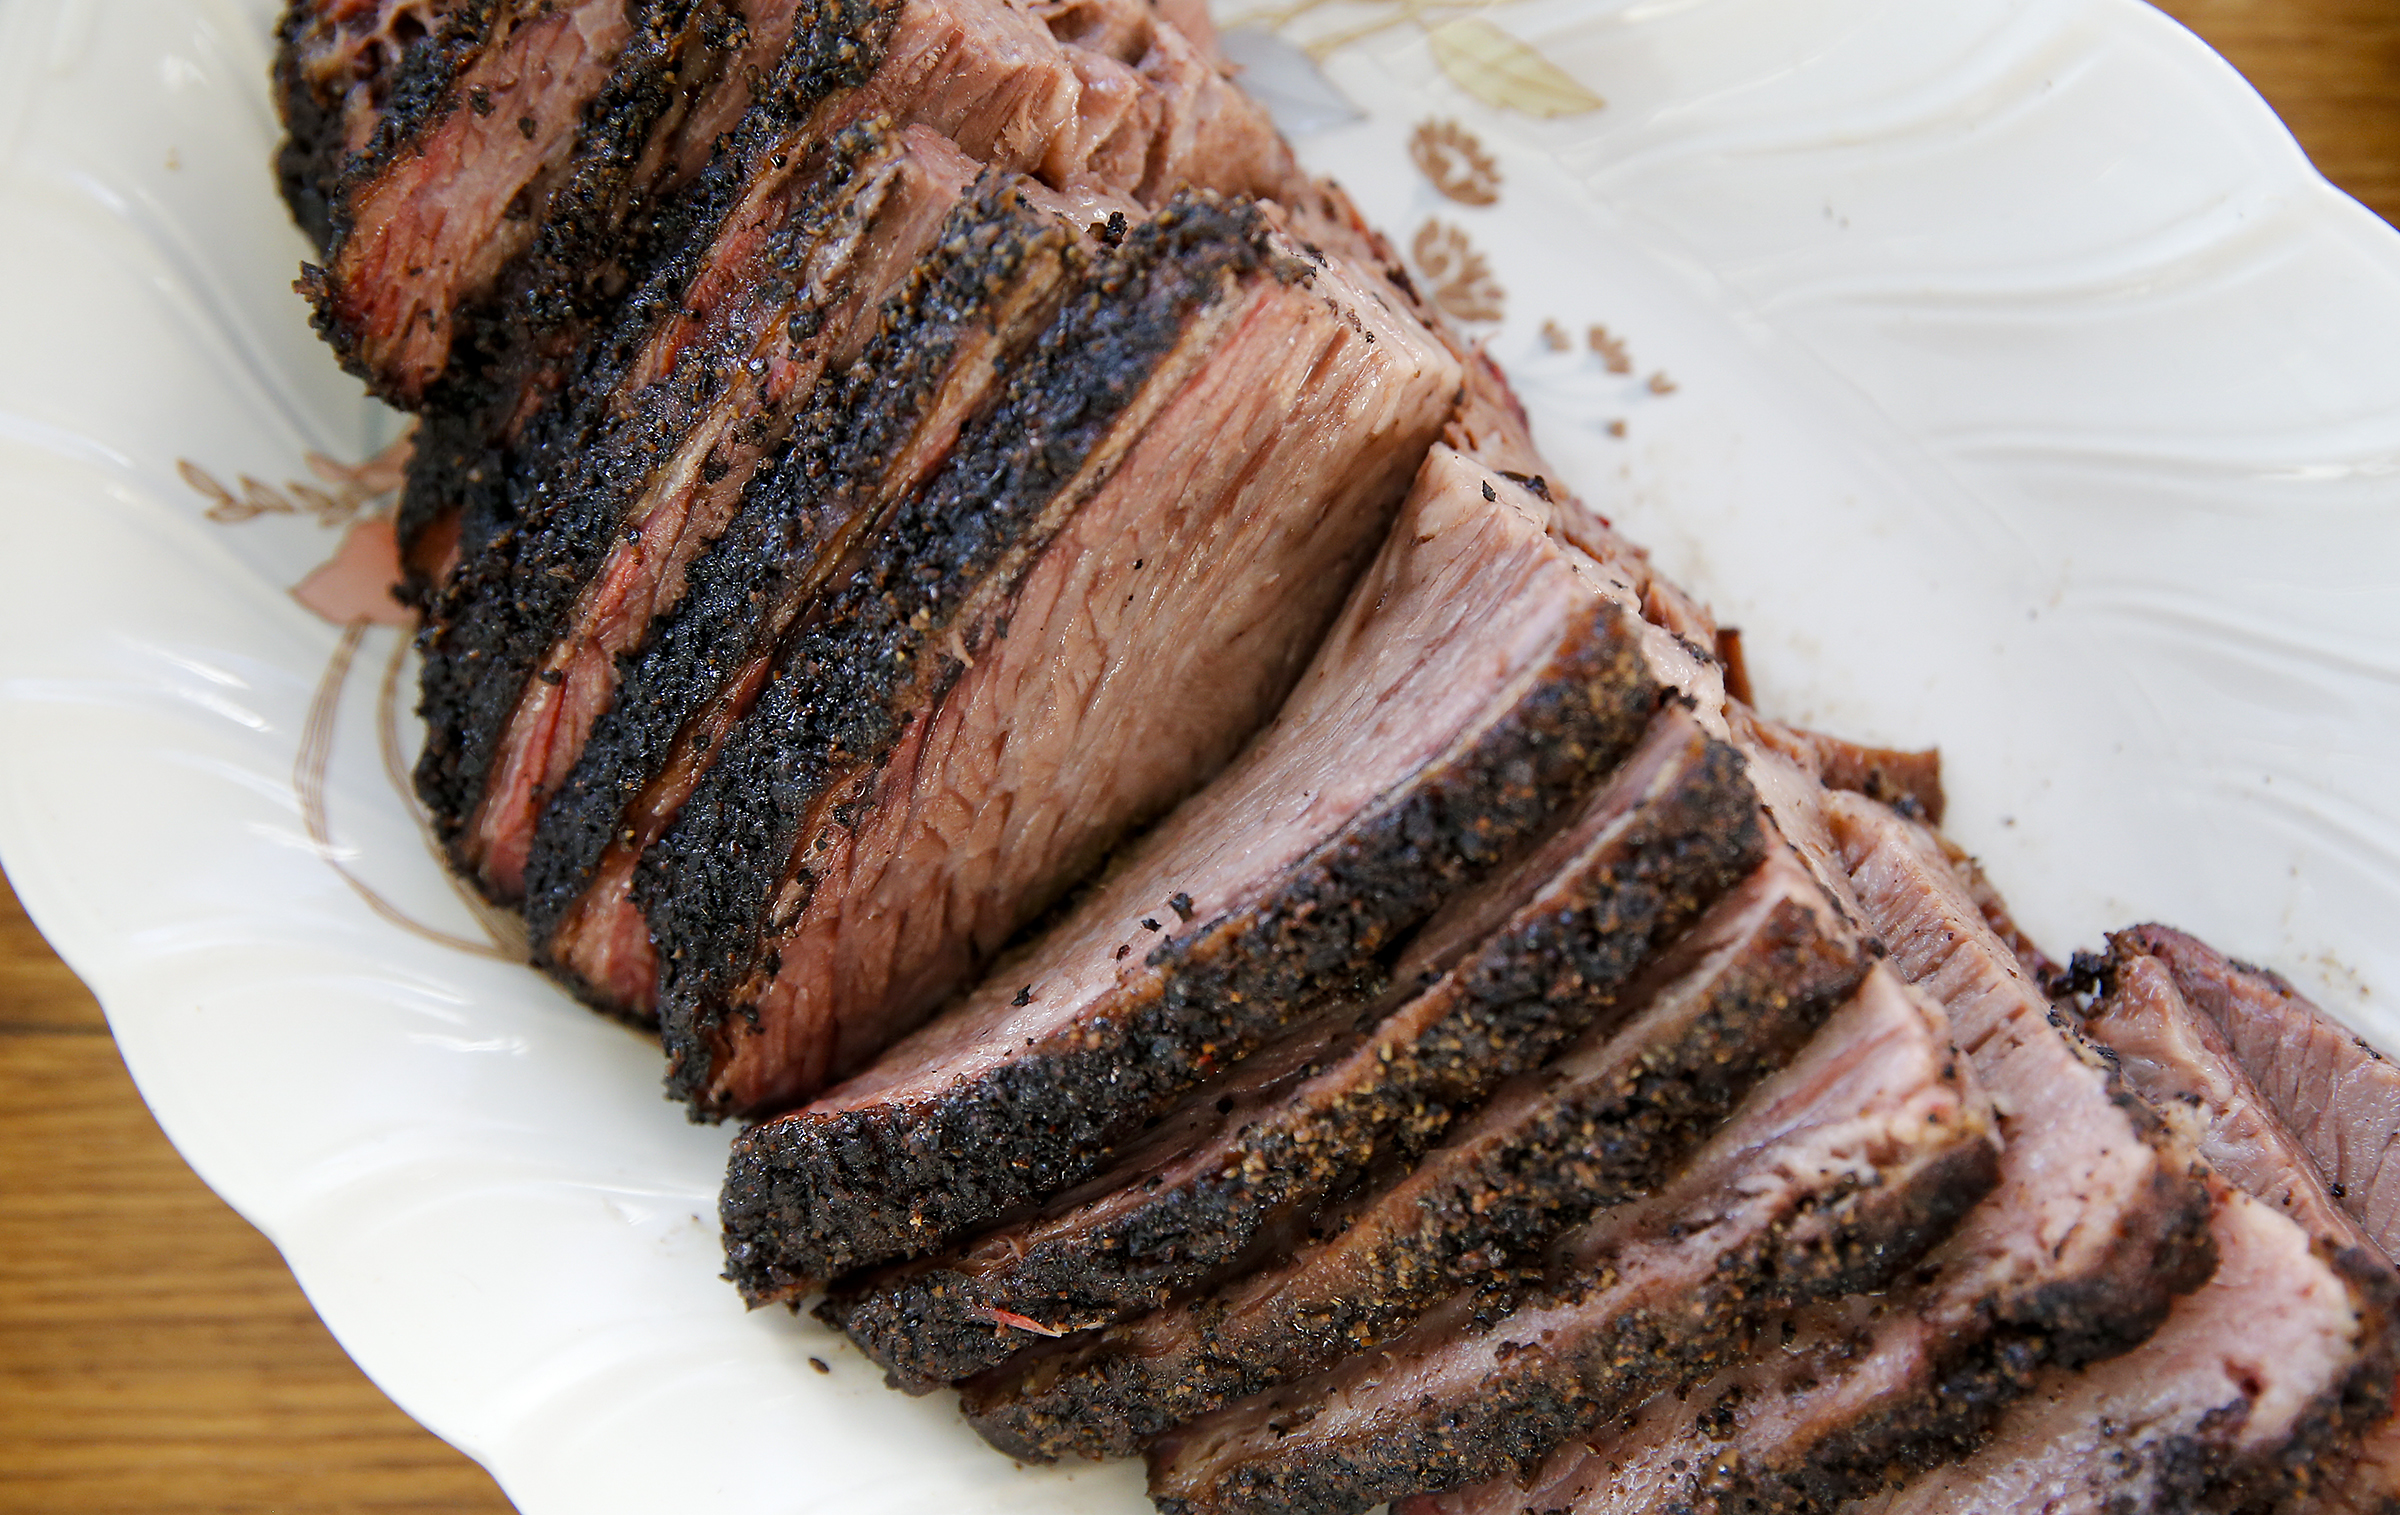 The Central Texas Style Smoked Brisket smoked by Scott Hanson at Cadence Restaurant in the Fishtown section of Philadelphia on Monday, March 15, 2021. Hanson, a Texas BBQ pit master is opening a barbecue pop-up with a Tex-Mex twist at Cadence Restaurant.